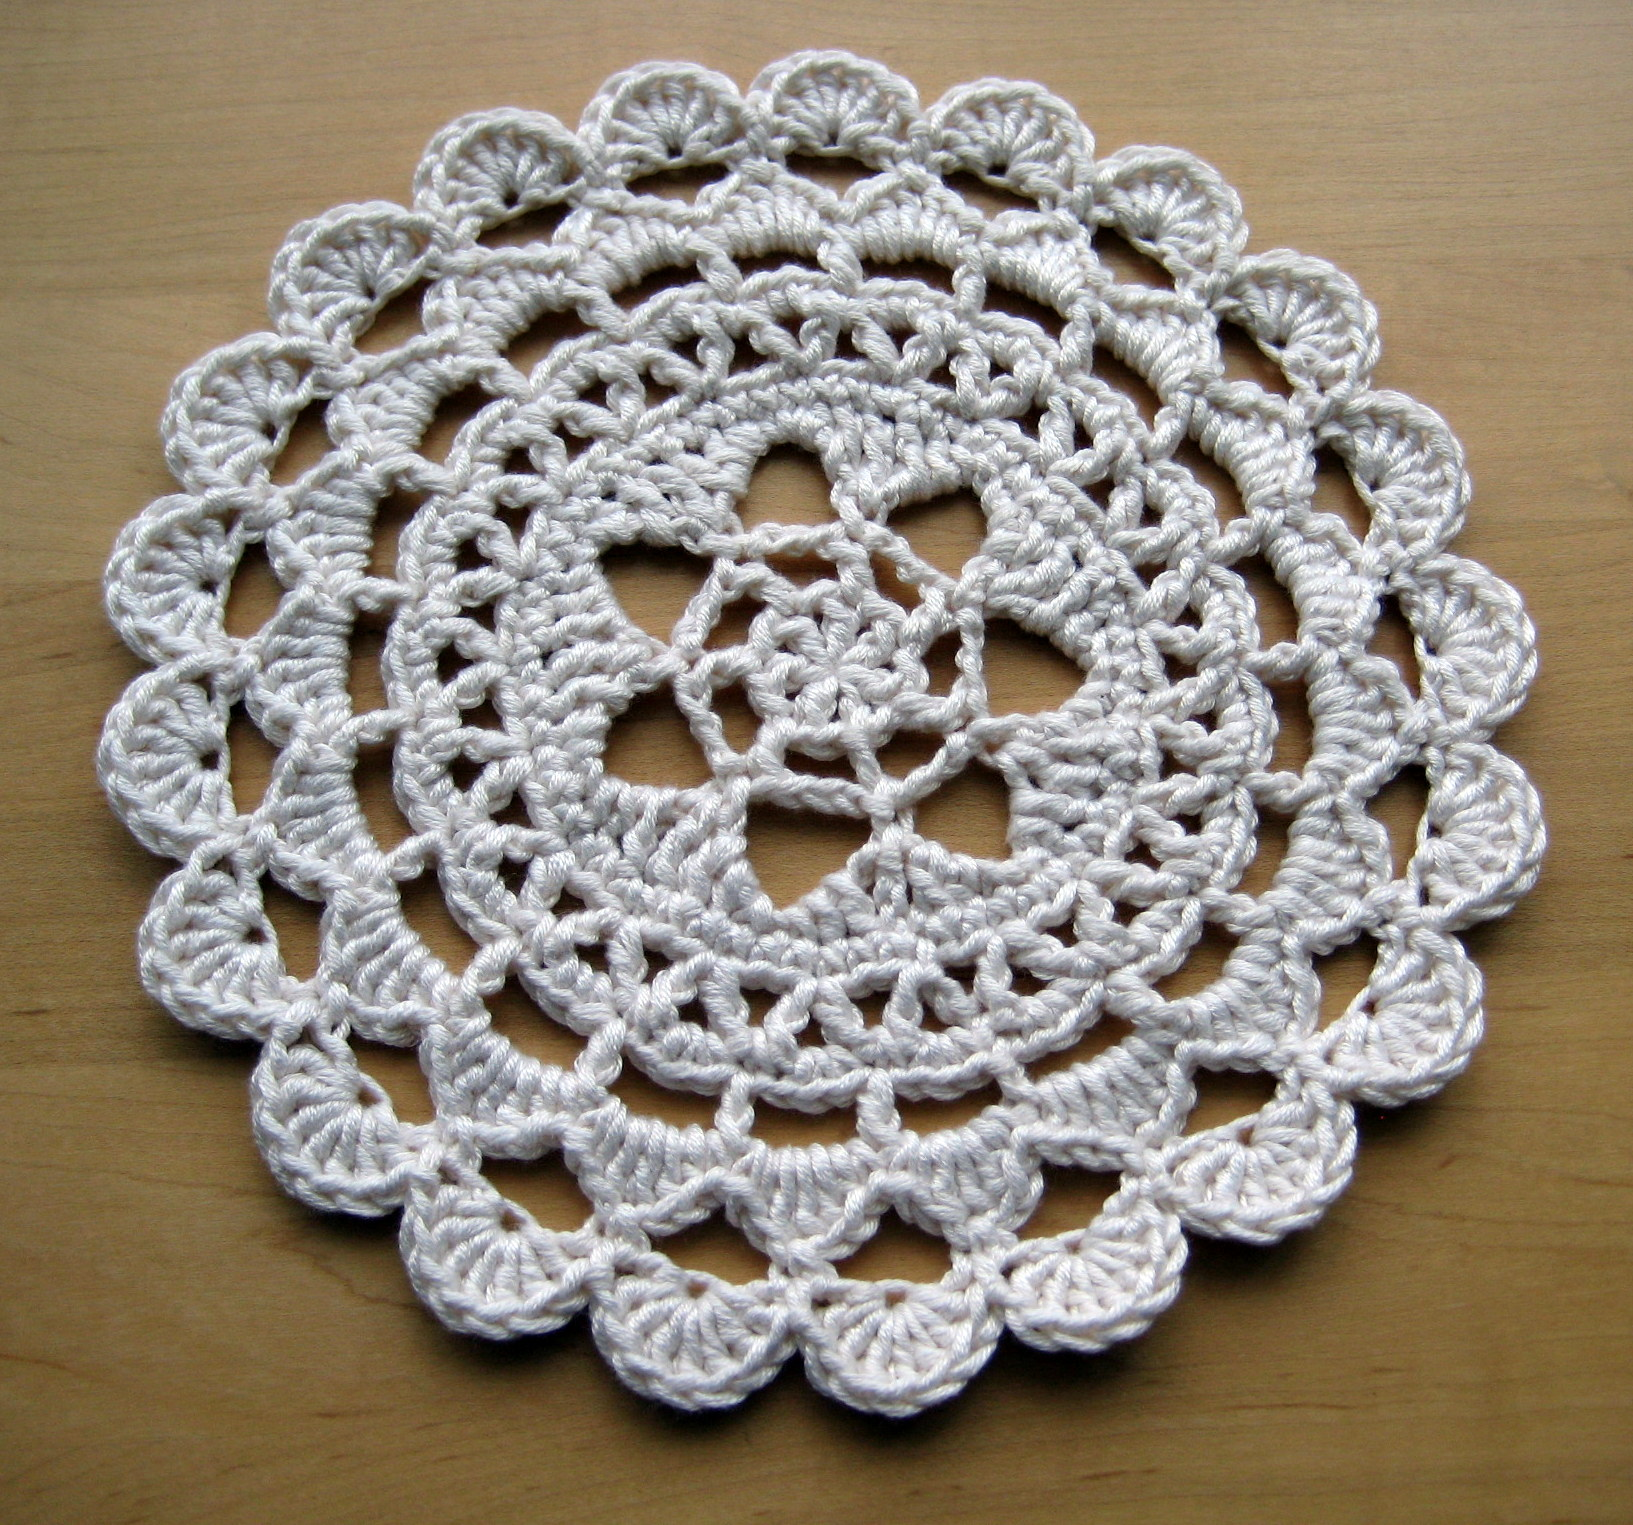 Free crochet pattern doily easy squareone for passion flower doily make my day creative free crochet pattern doily easy bankloansurffo Gallery